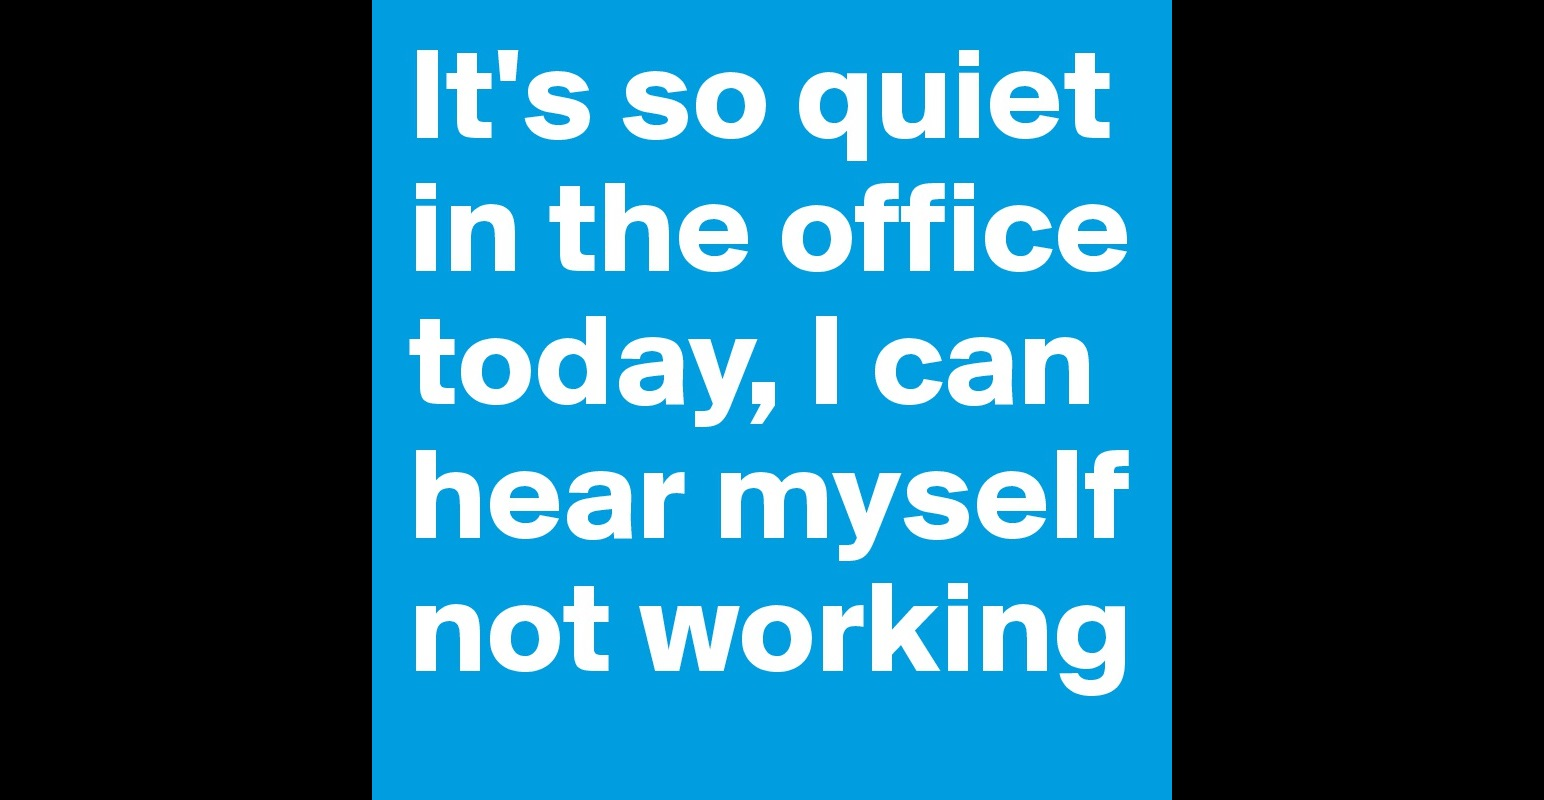 It 39 s so quiet in the office today i can hear myself not working post by wengen2 on boldomatic - Post office working today ...